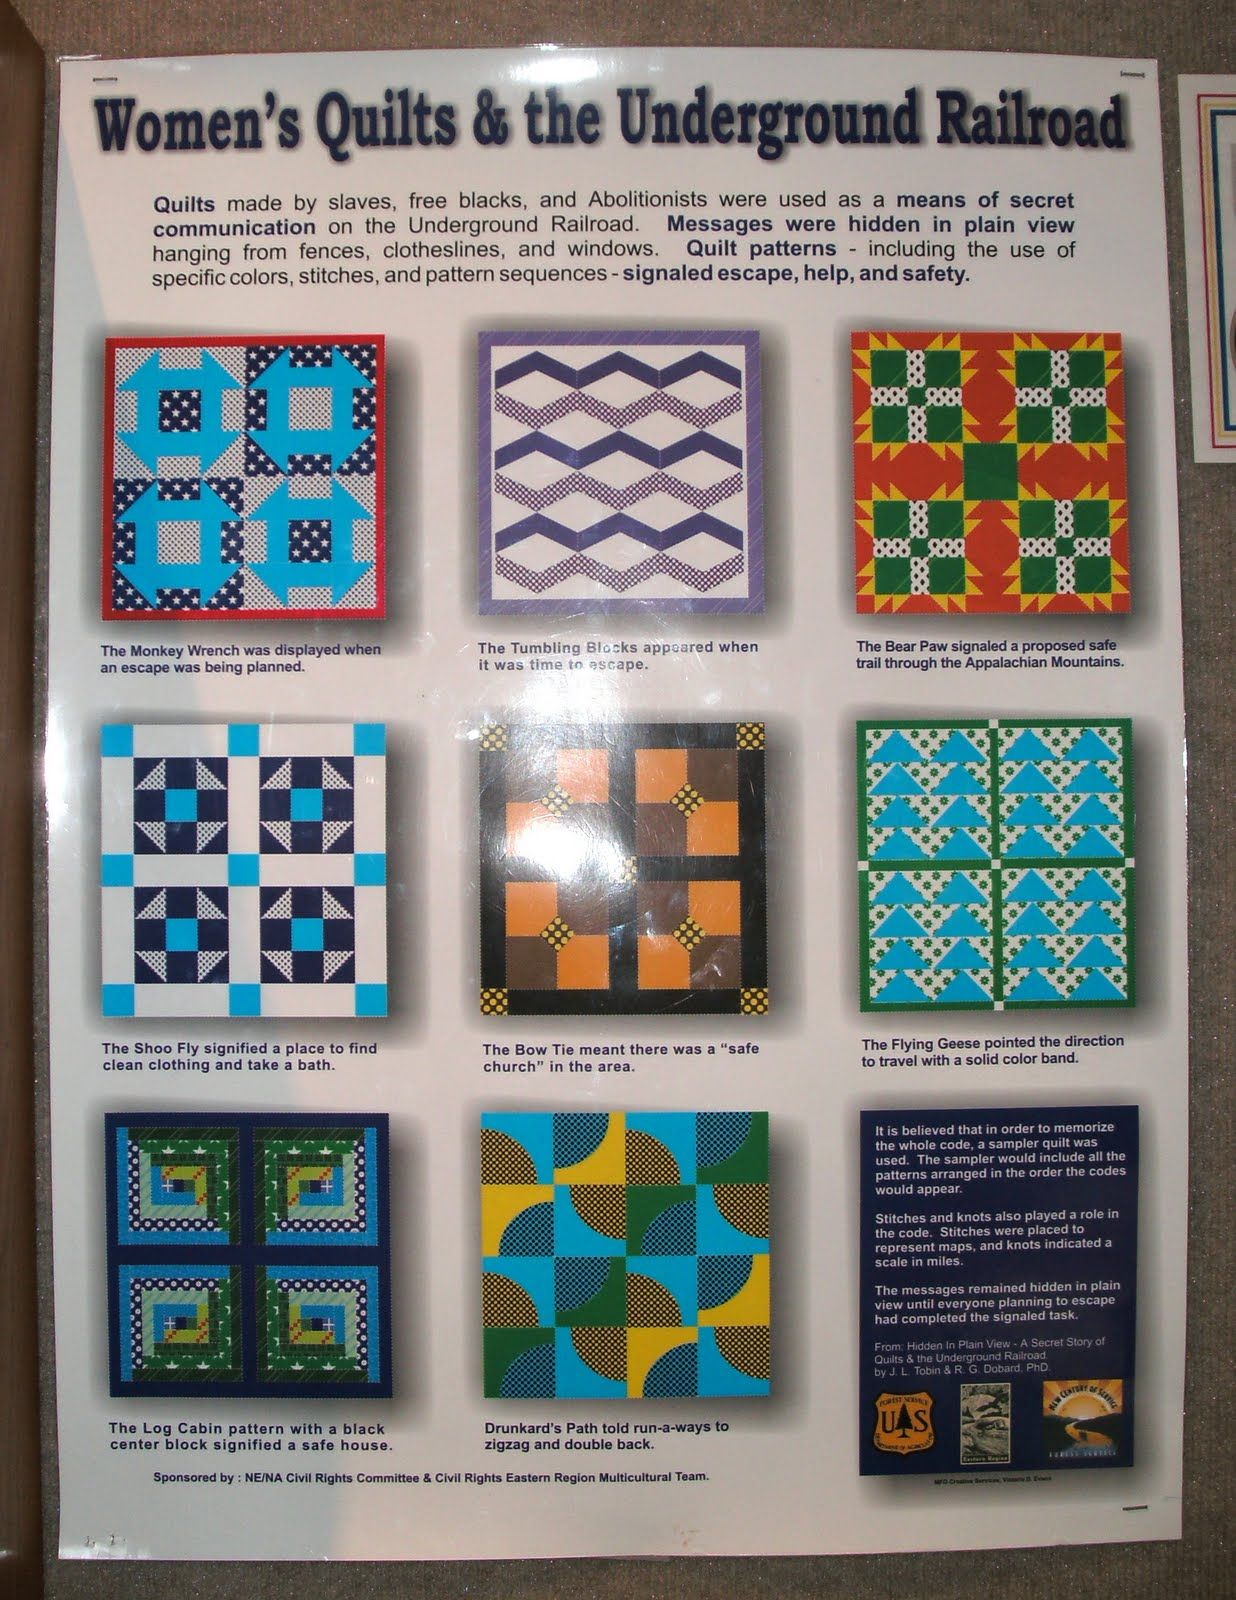 Underground Railroad Quilt Pattern Meanings